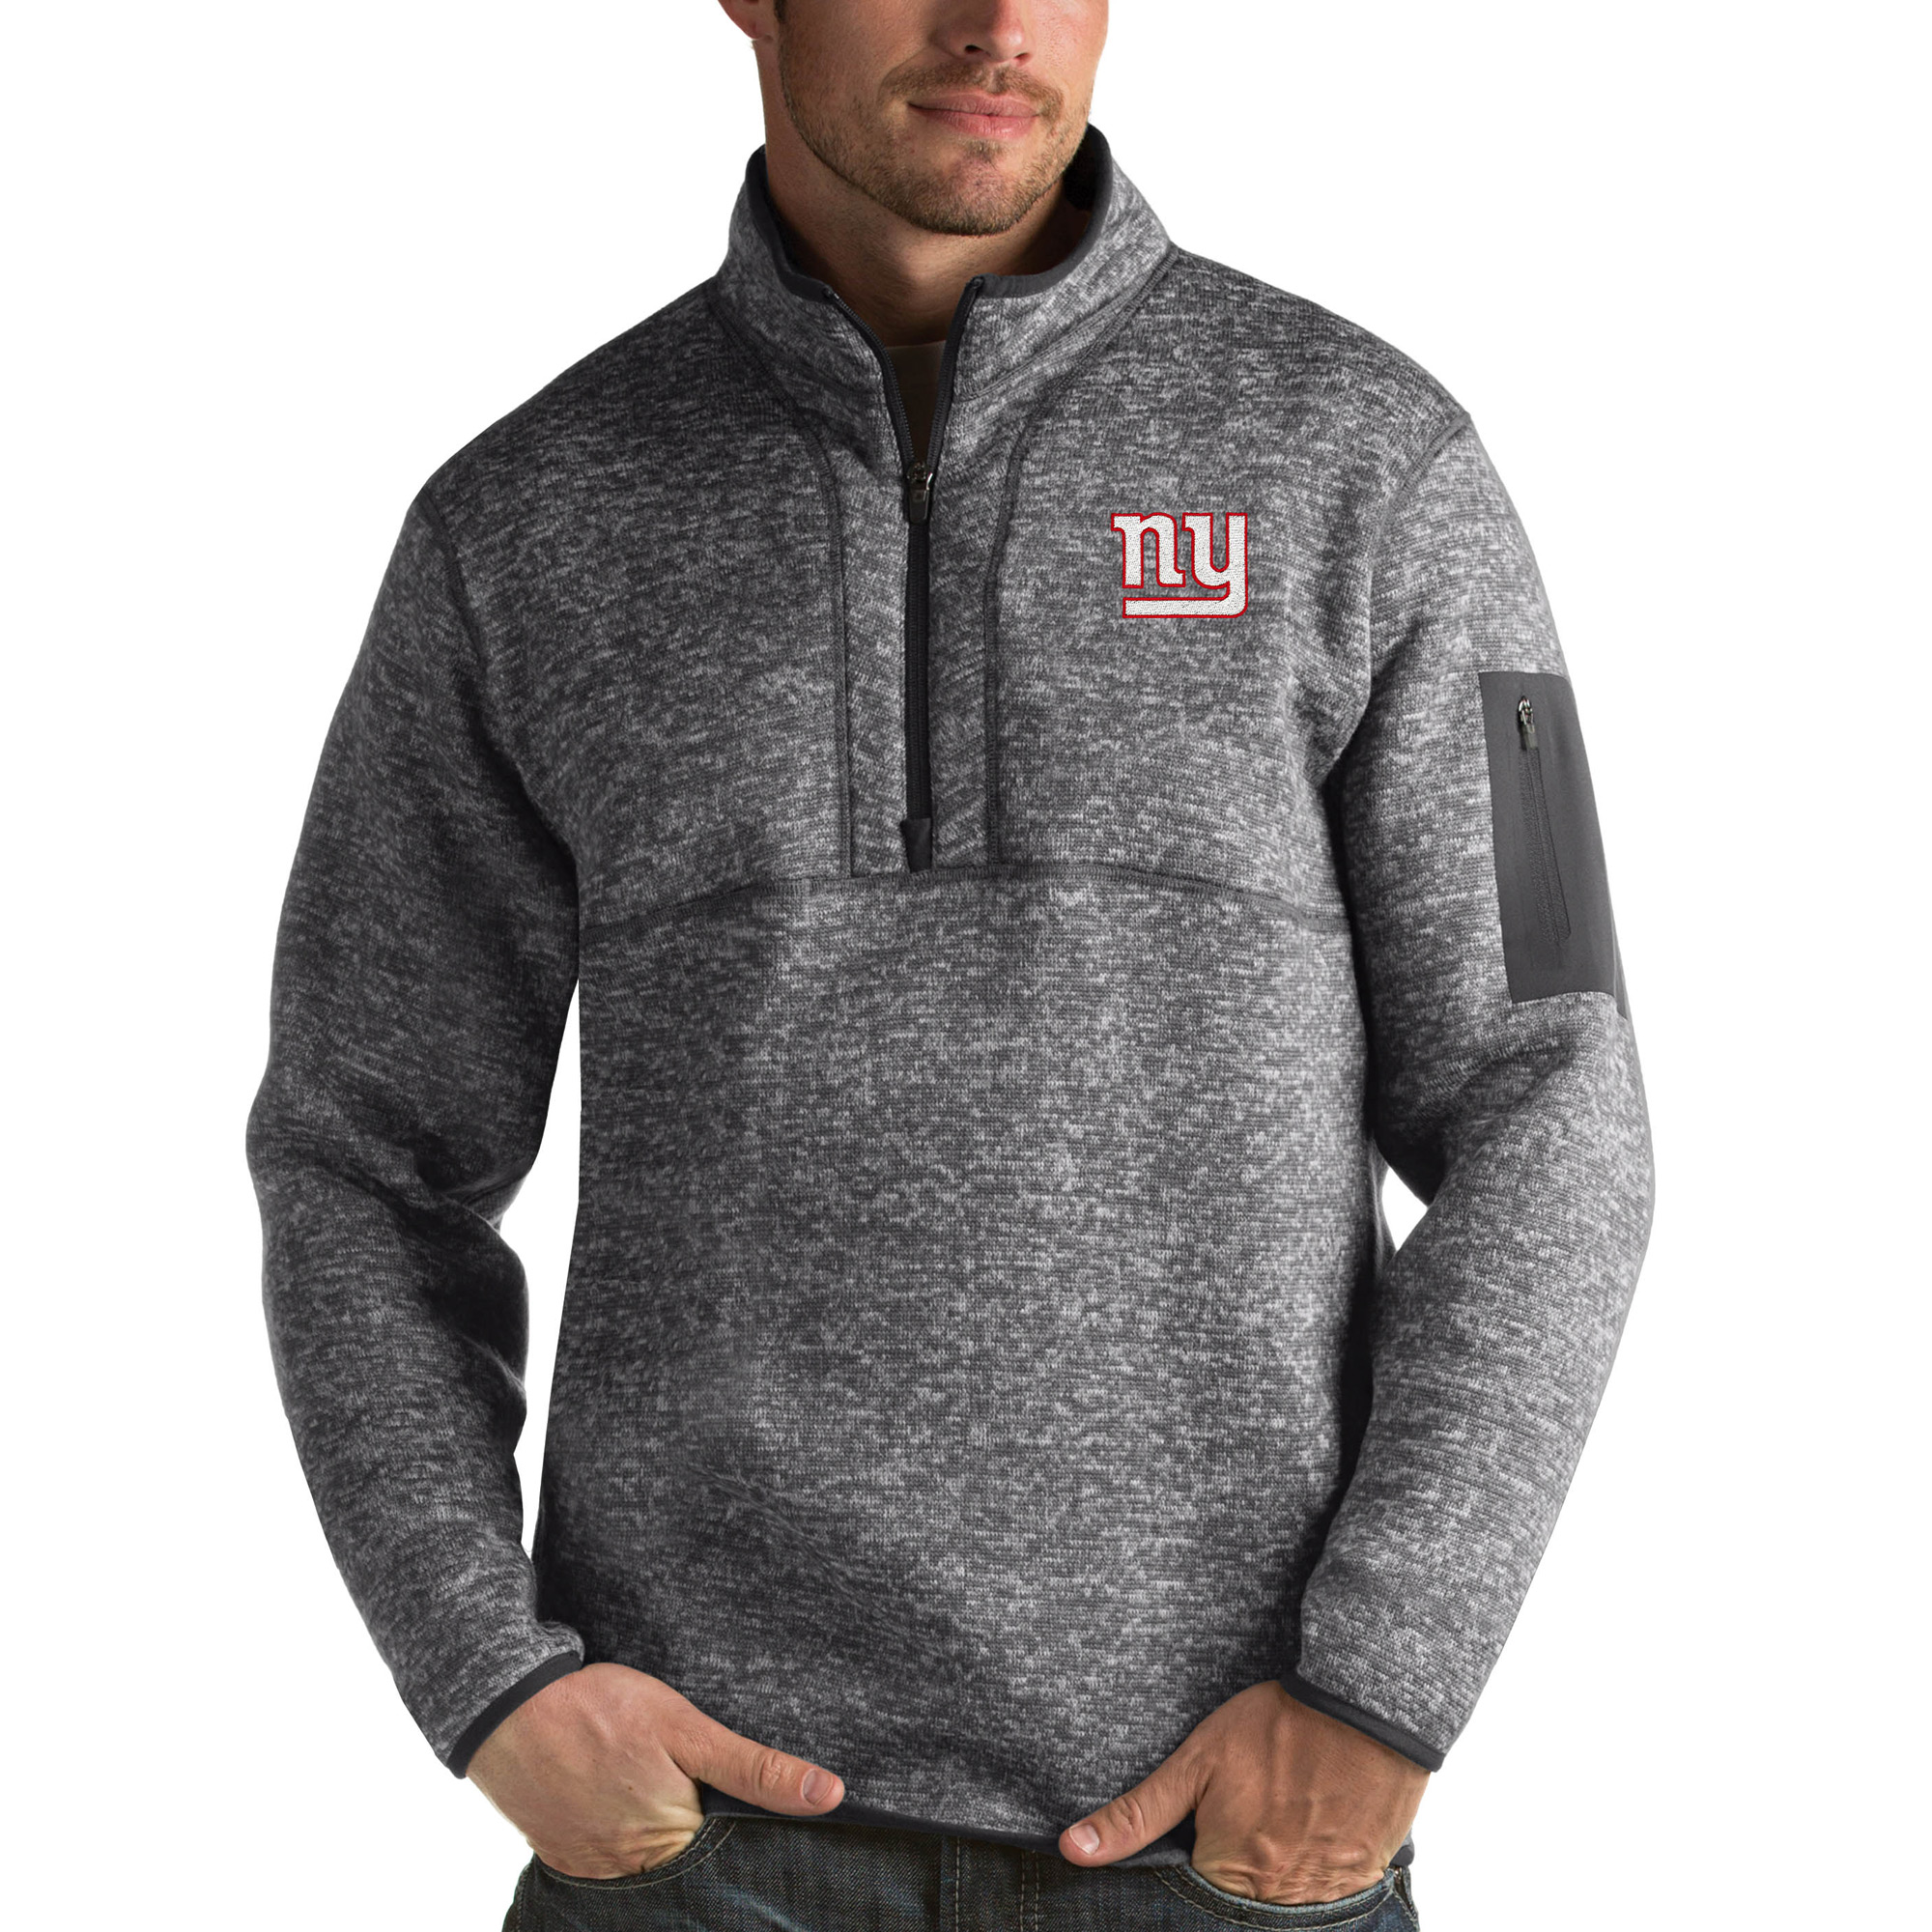 New York Giants Antigua Fortune Quarter-Zip Pullover Jacket - Charcoal - S